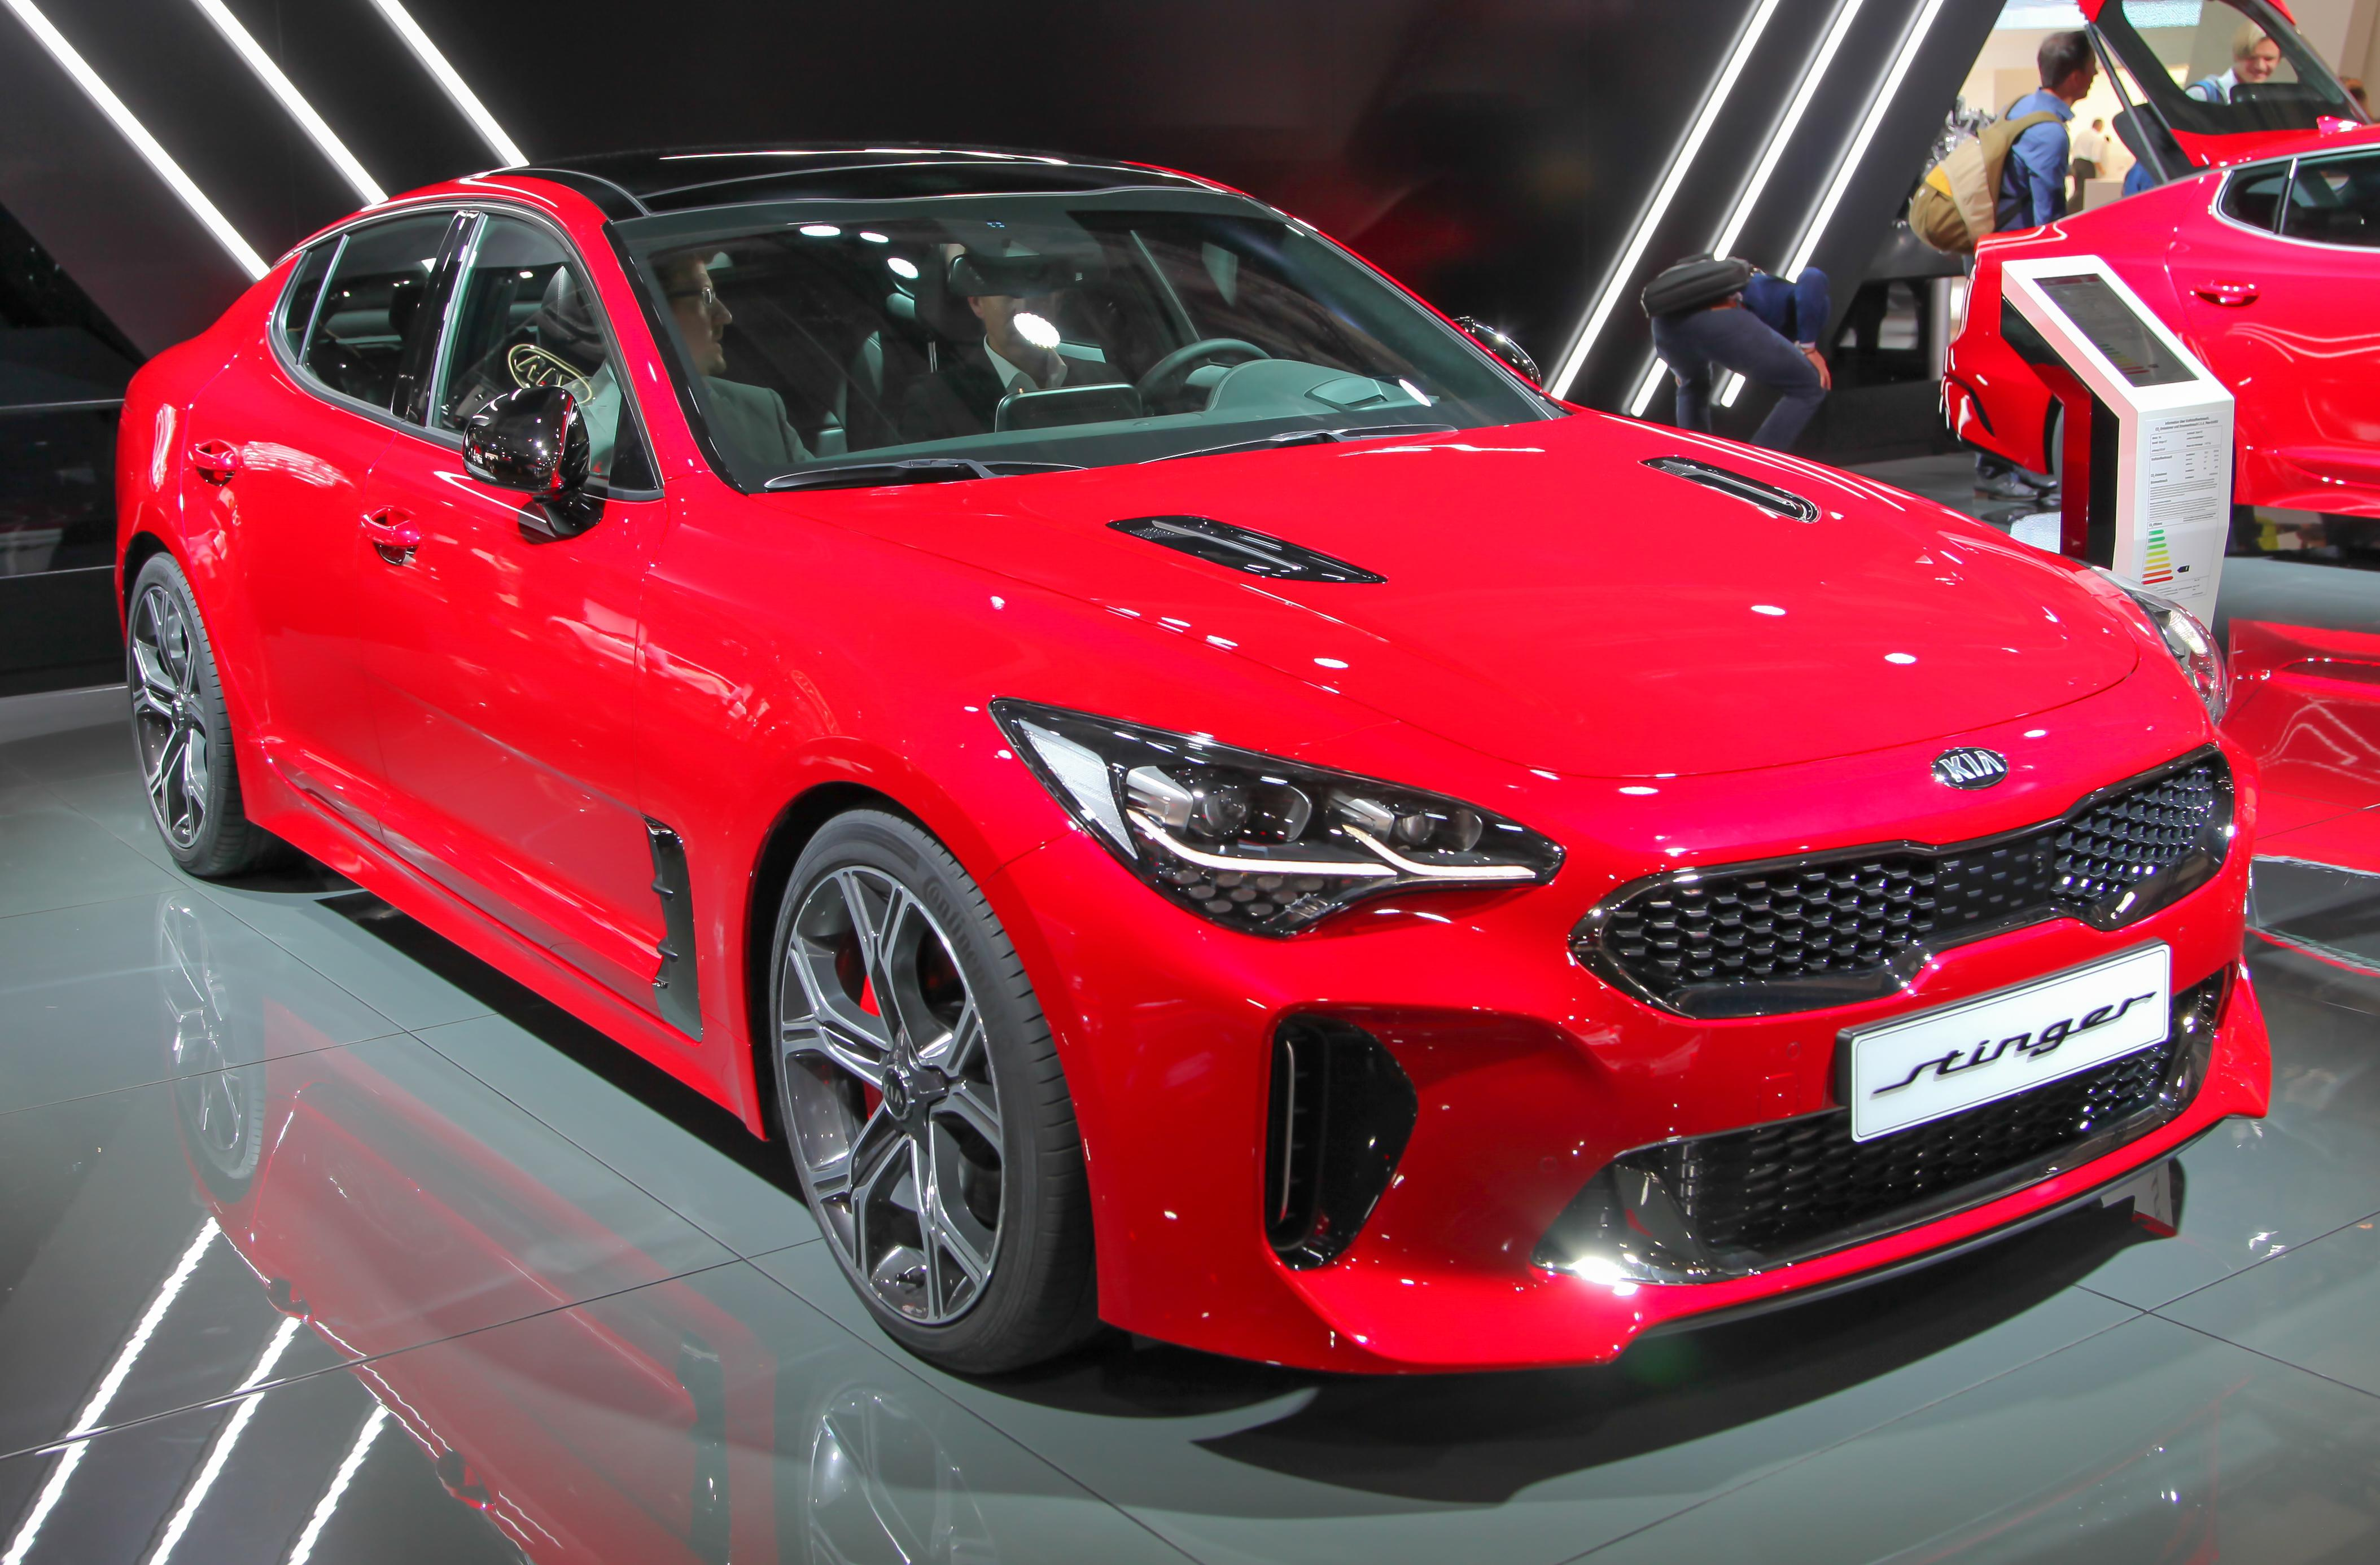 39 2 dudes 39 give the kia stinger 2 thumbs up video